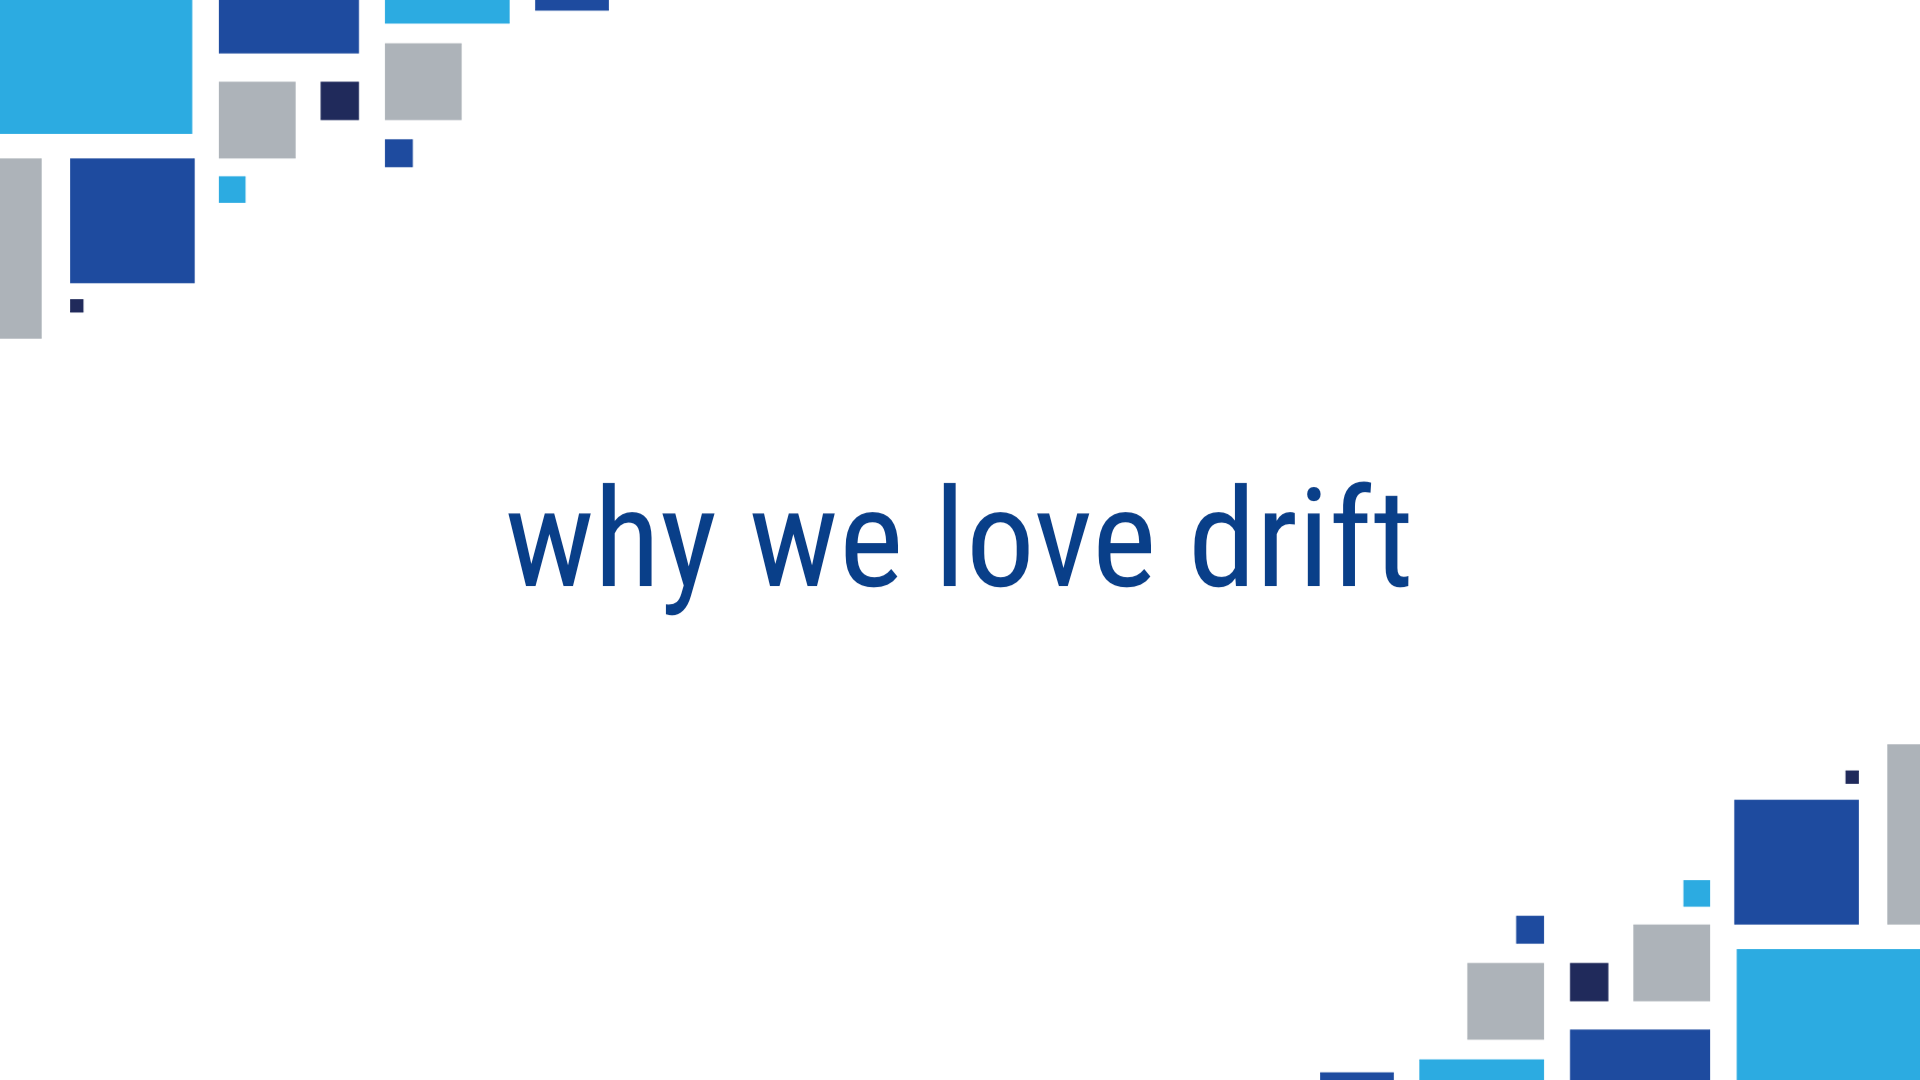 Why We Love Drift